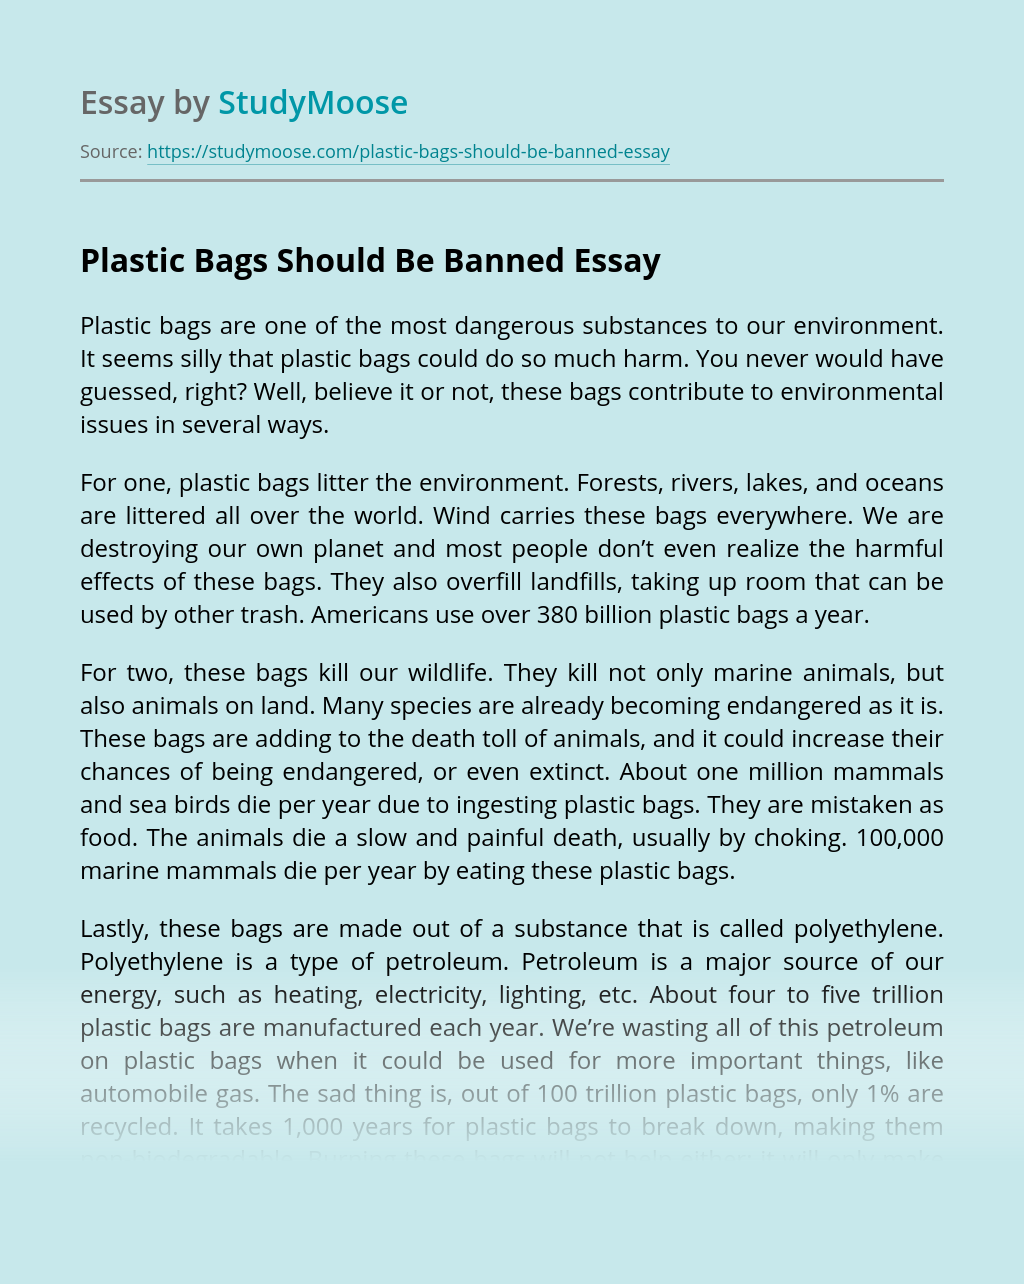 Plastic Bags Should Be Banned